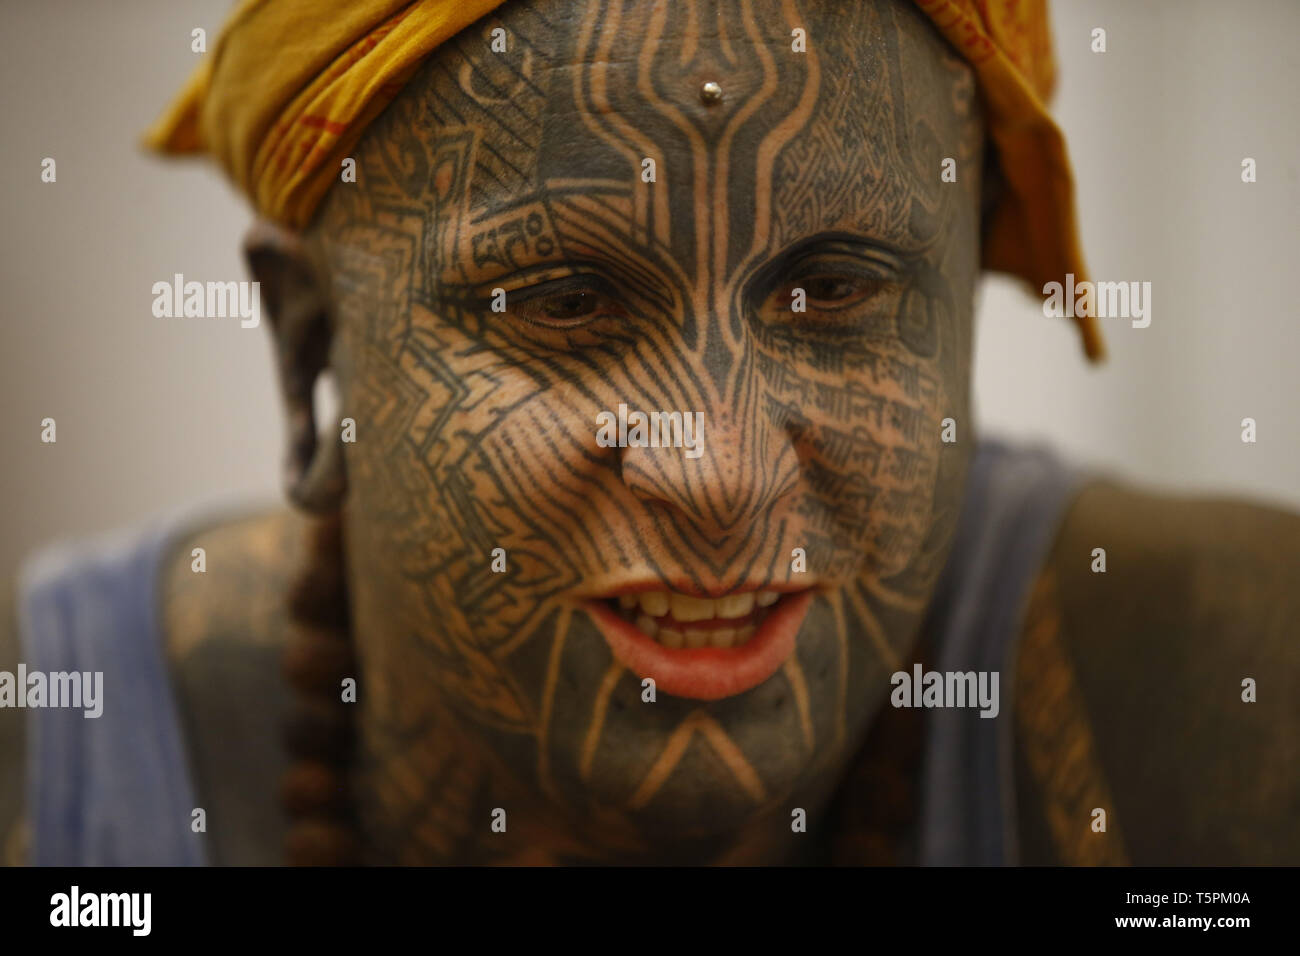 153fb849a Tattoo Convention Face Stock Photos & Tattoo Convention Face Stock ...